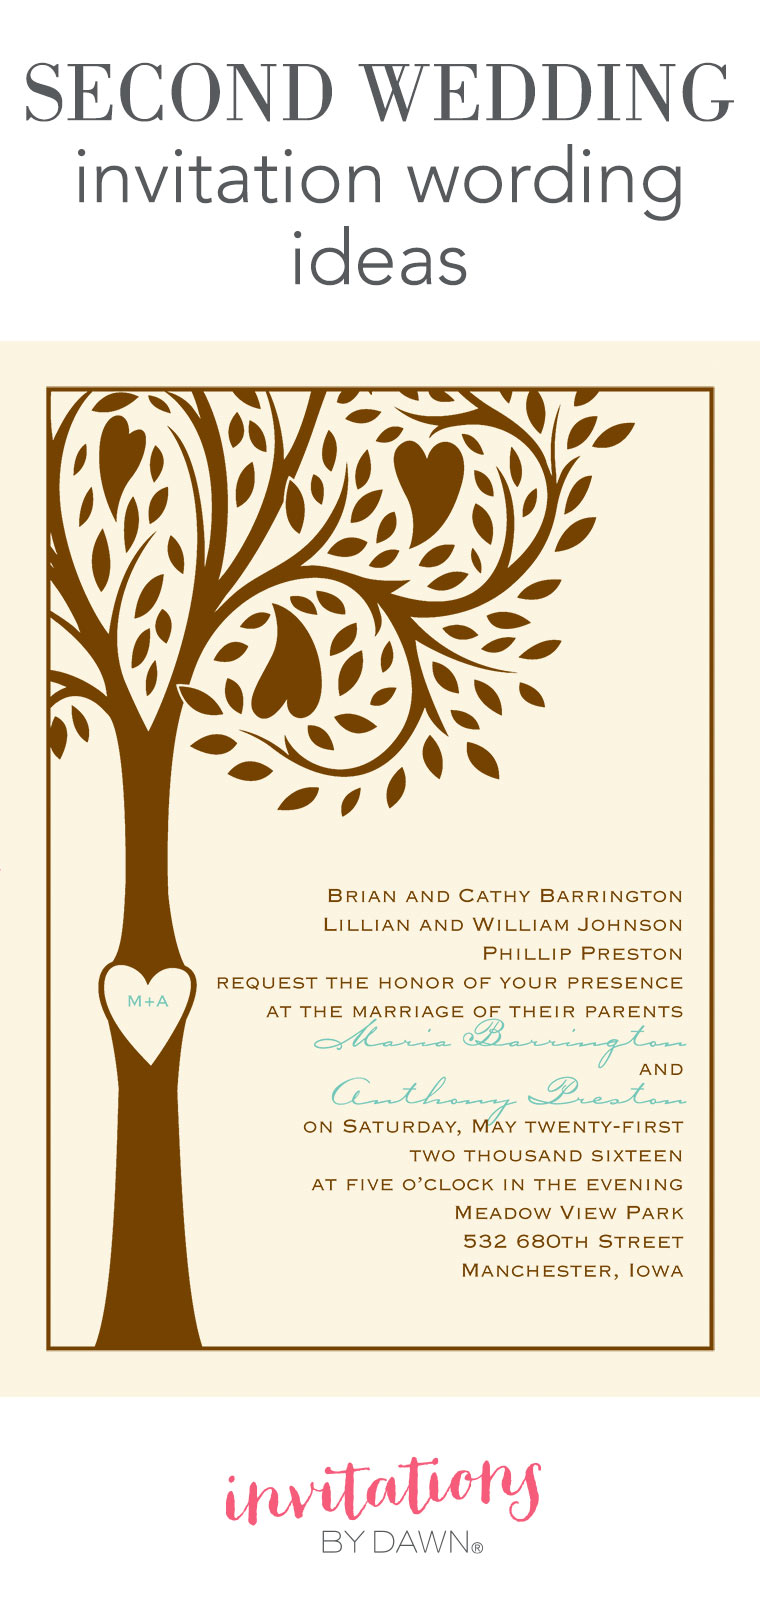 second wedding invitation wording invitations by dawn